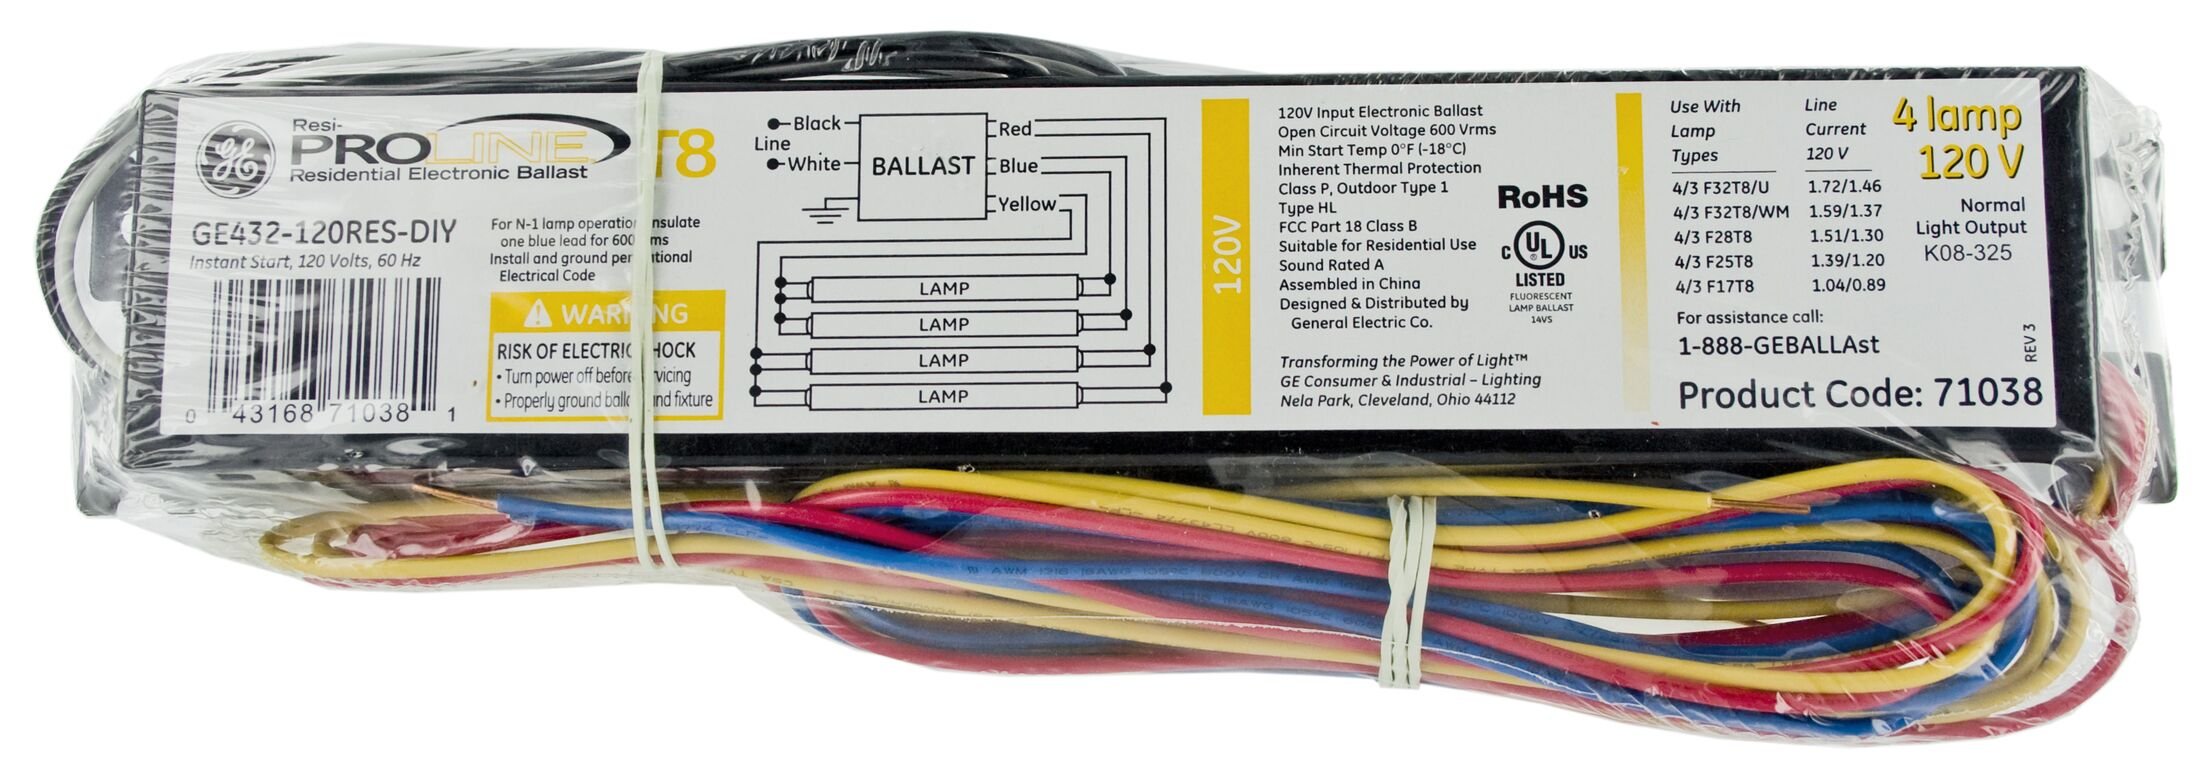 Residential Electronic Ballast